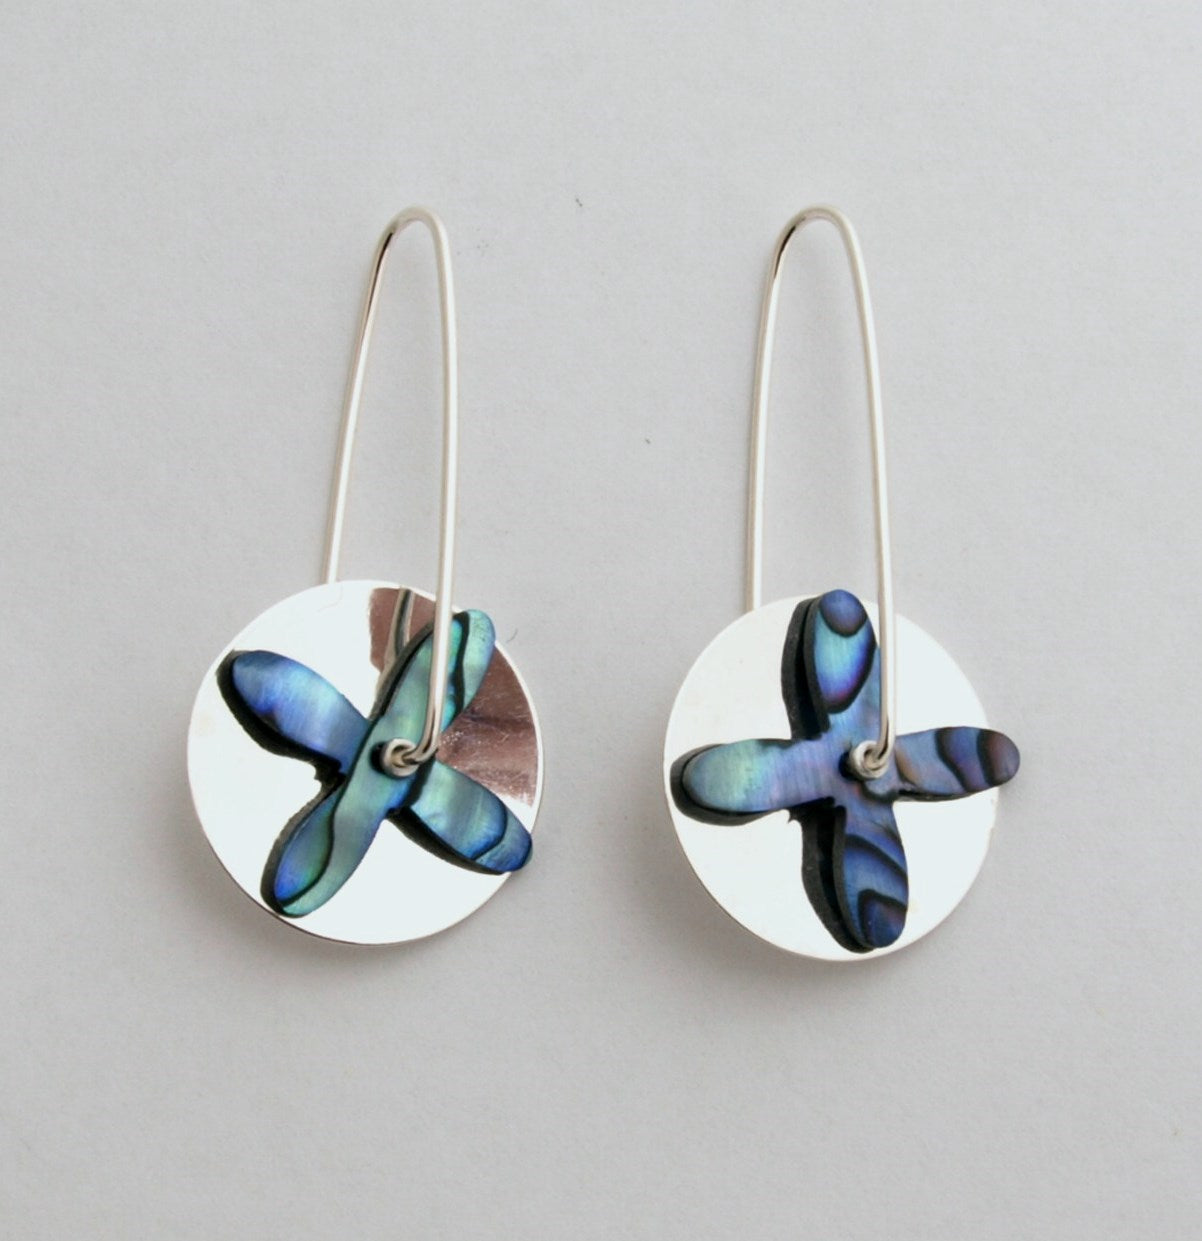 Tapa Silver Disc Earrings - Paua Shell